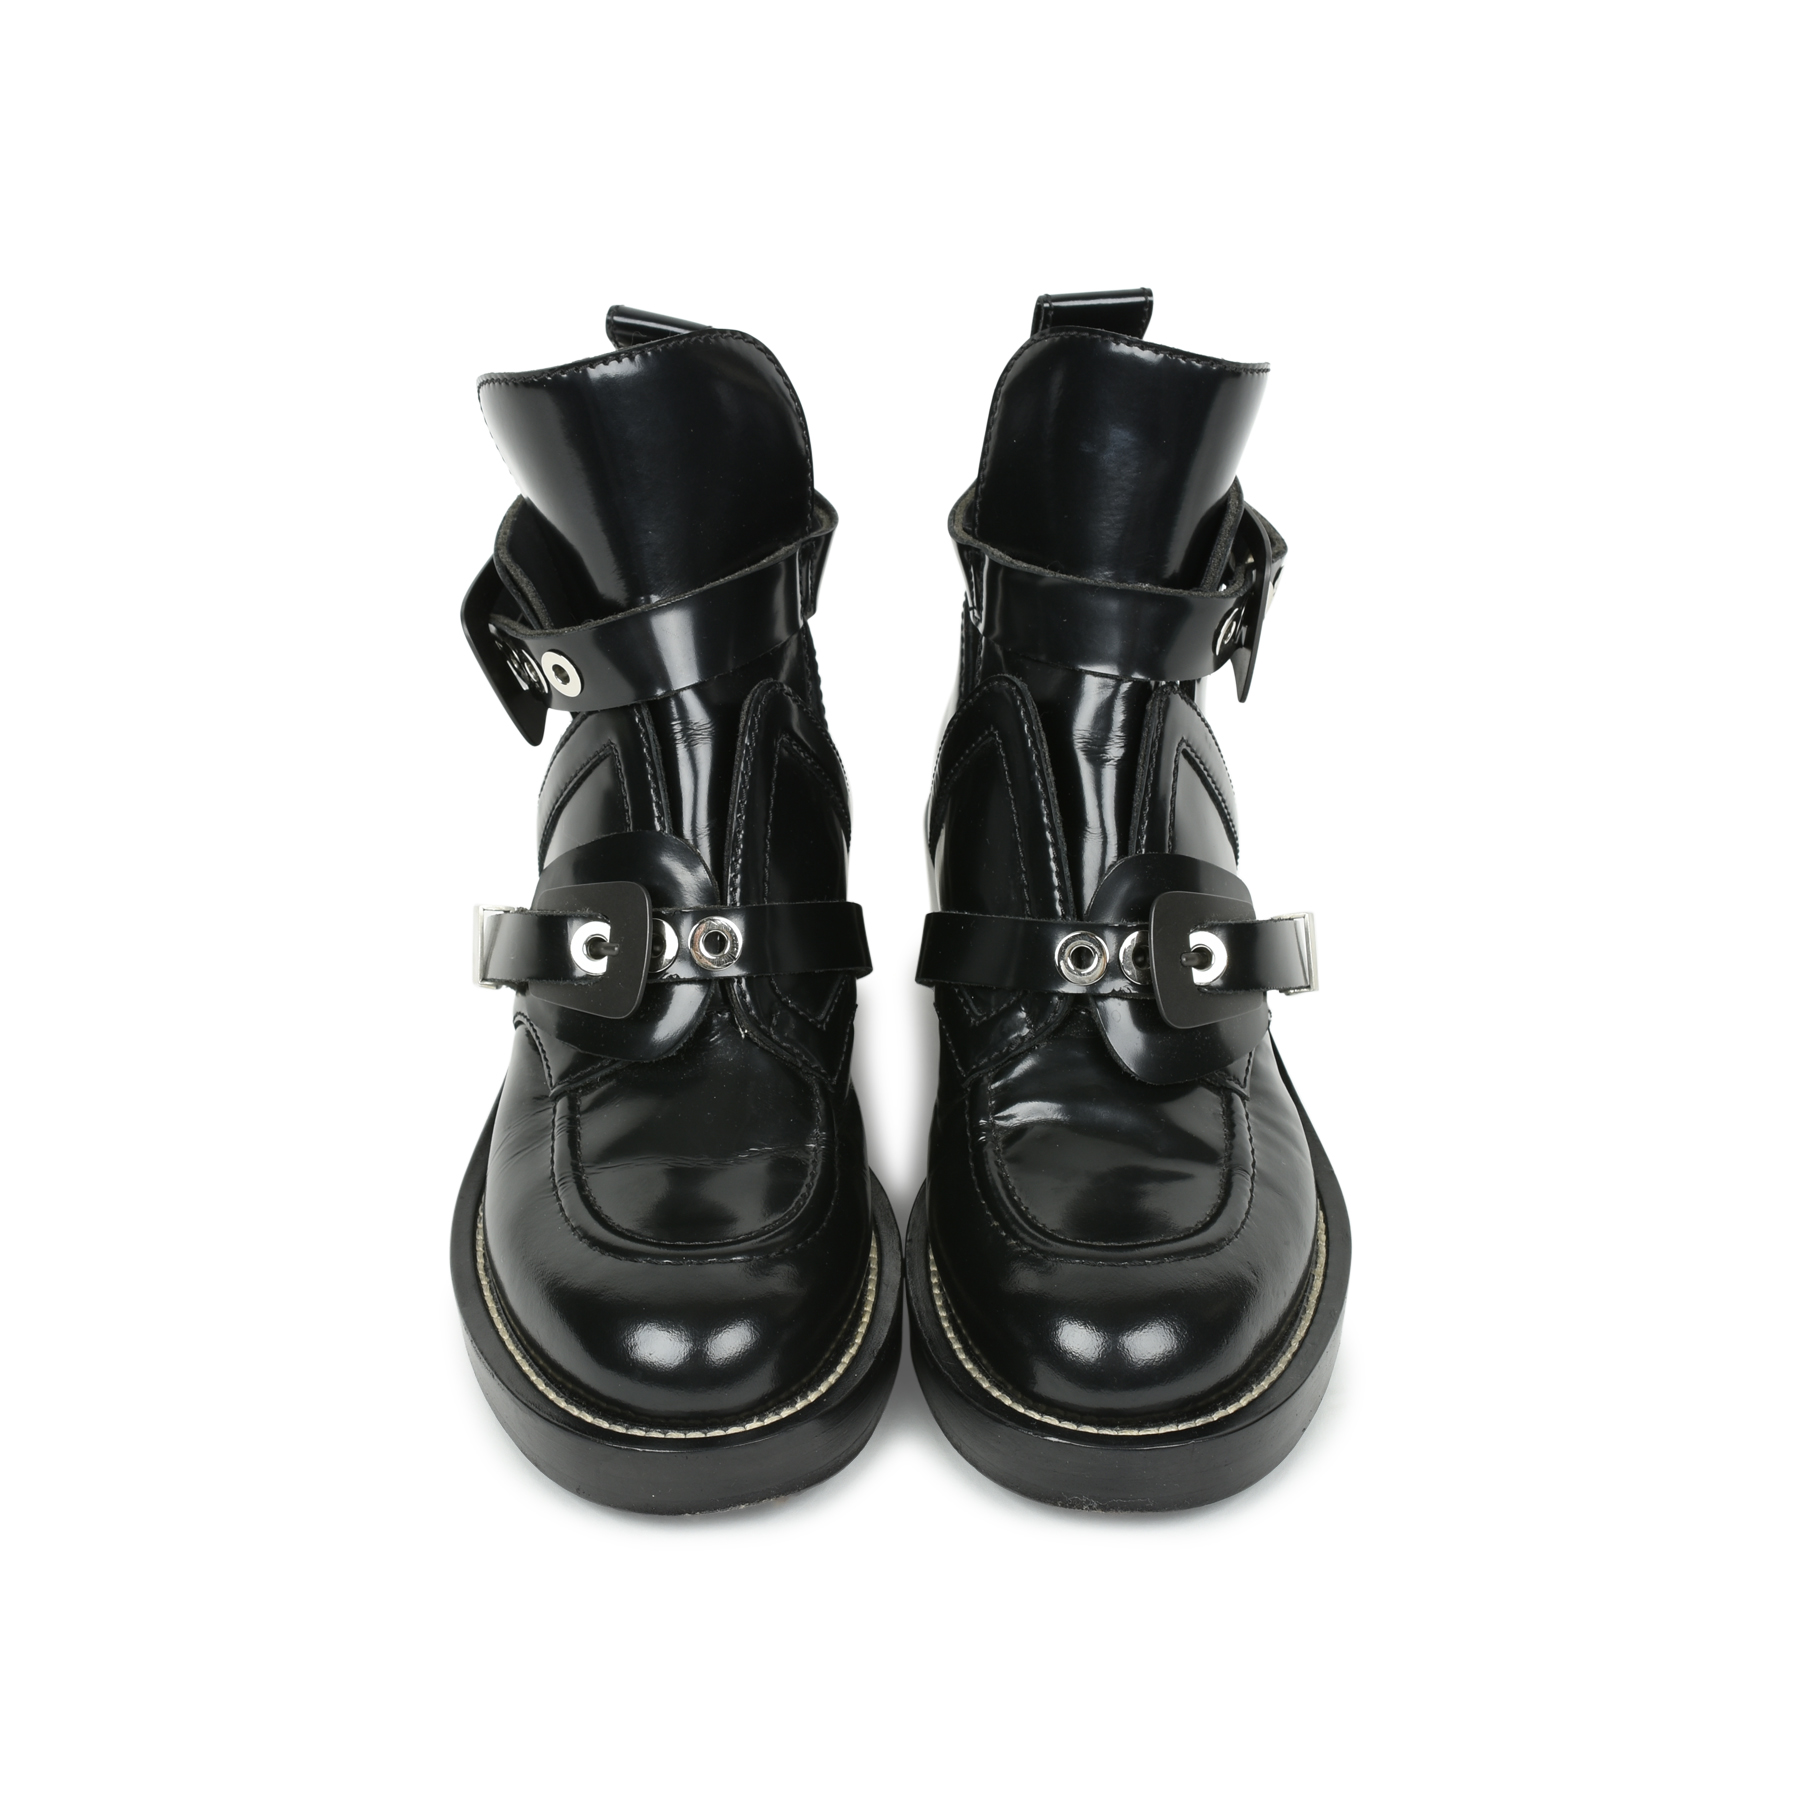 3e74374cb167 Authentic Second Hand Balenciaga Ceinture Leather Ankle Boots  (PSS-503-00009)